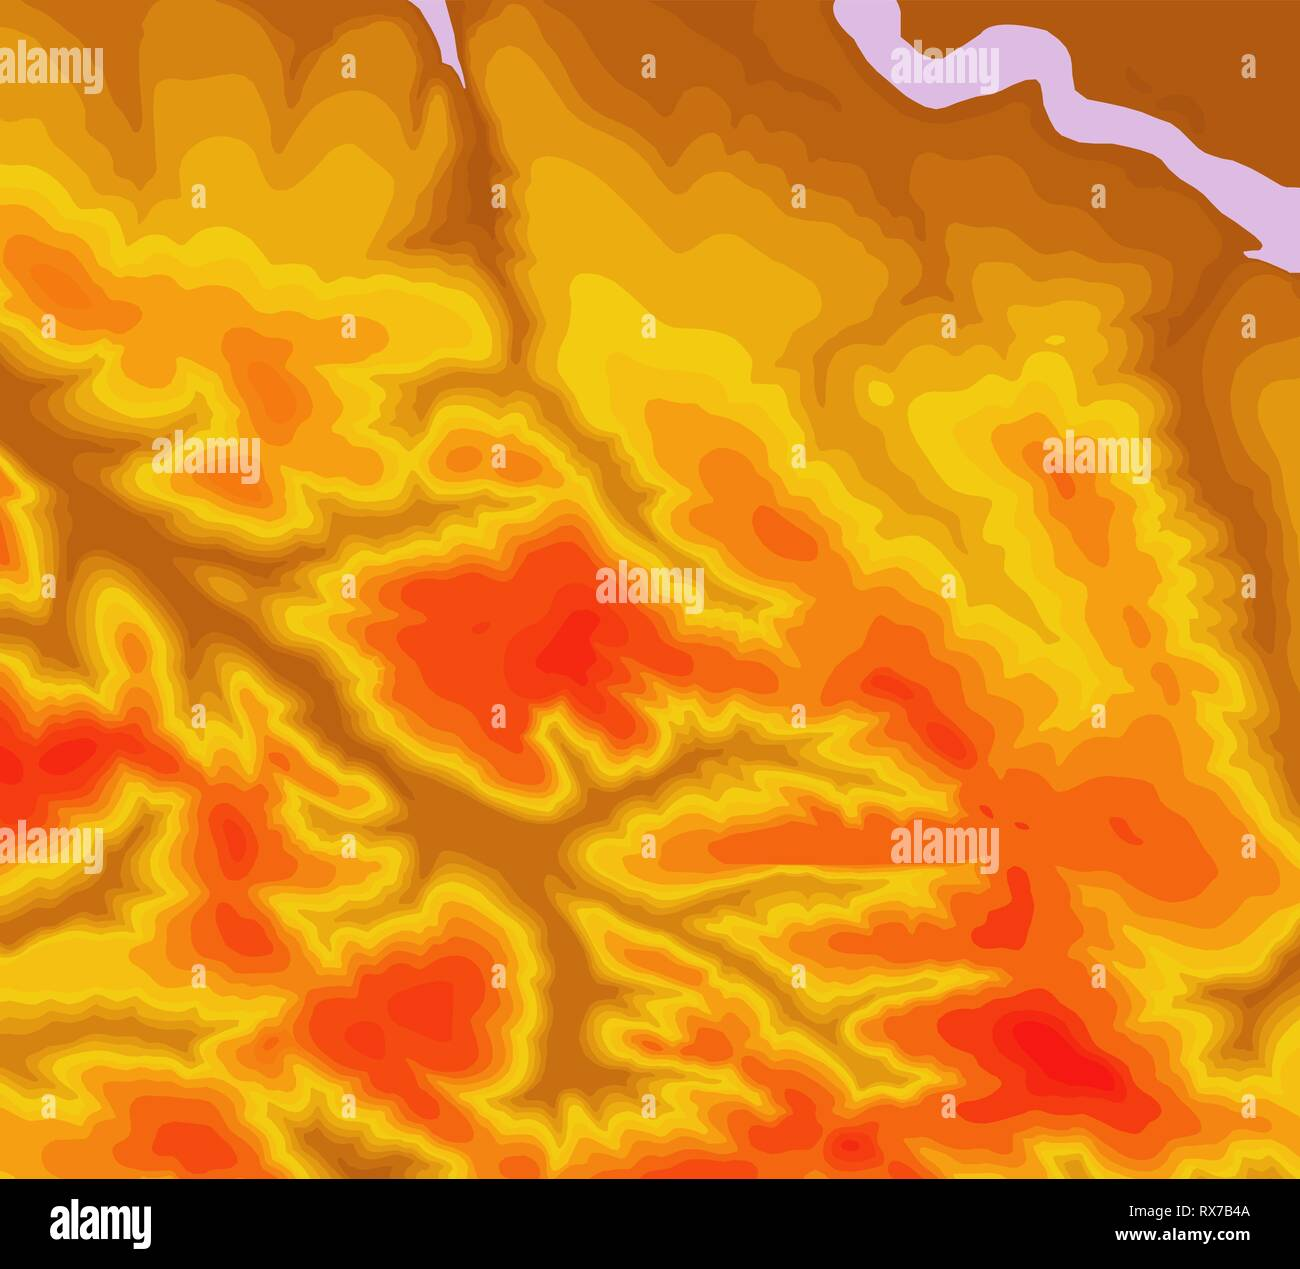 Topographic map contour background. Topo map with elevation. Contour map vector. Geographic World Topography map grid abstract vector illustration - Stock Image